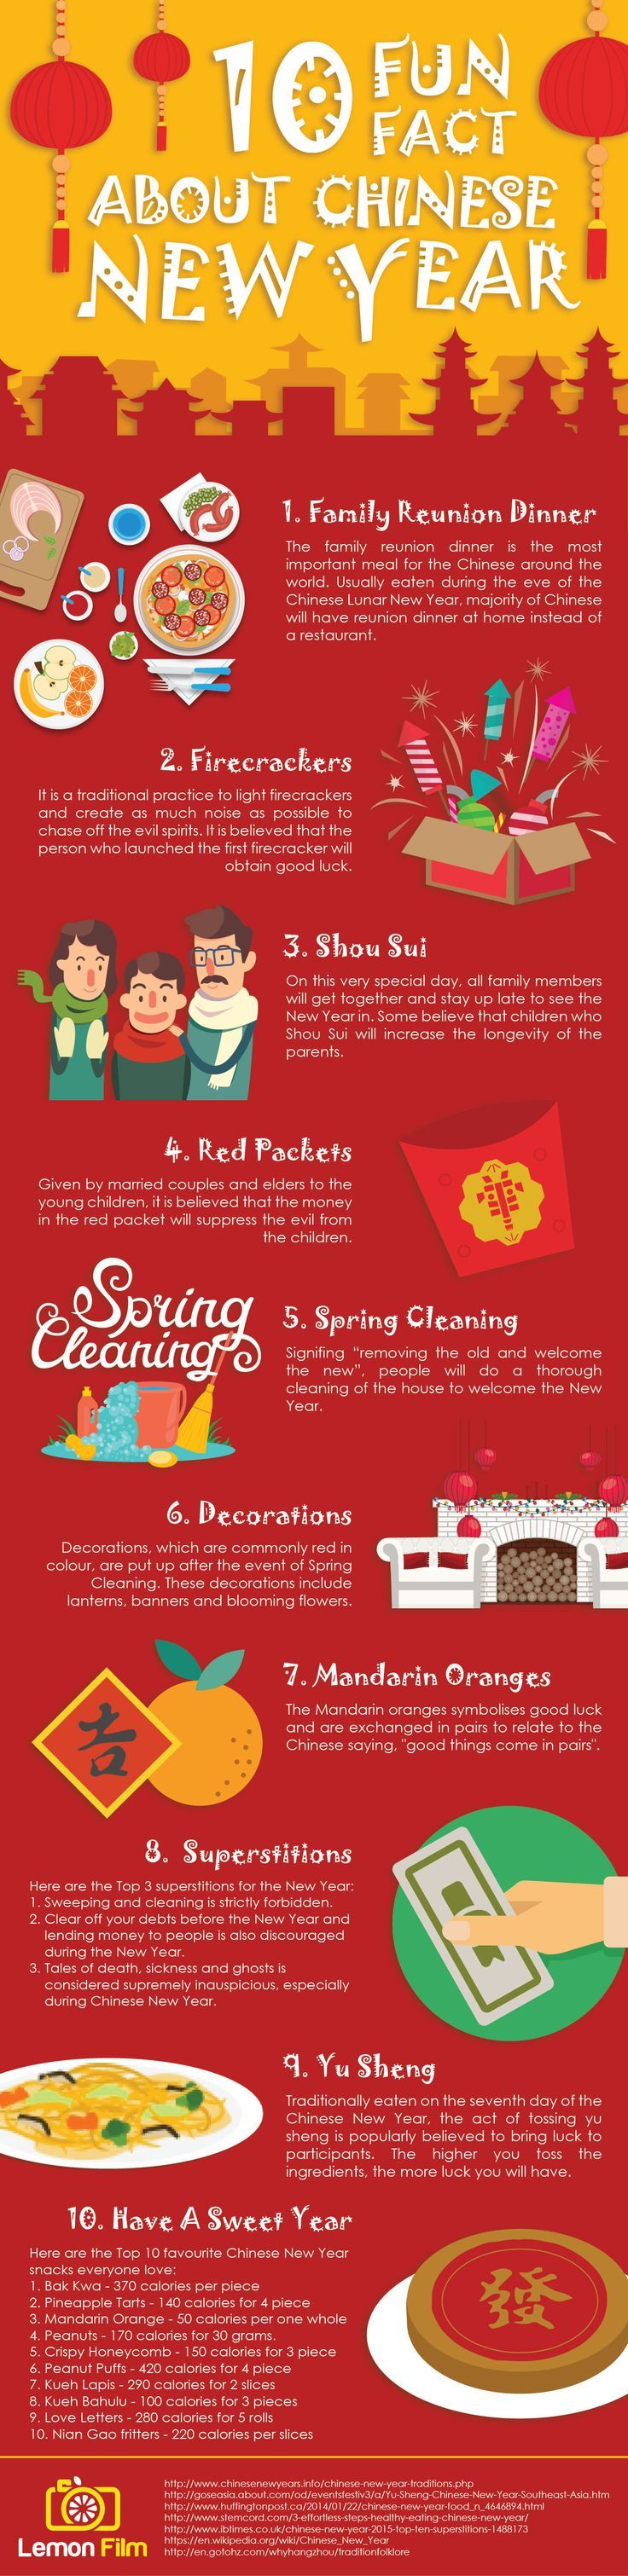 [Infographic] From traditions to superstitions, here are the 10 fun facts about Chinese New Year.